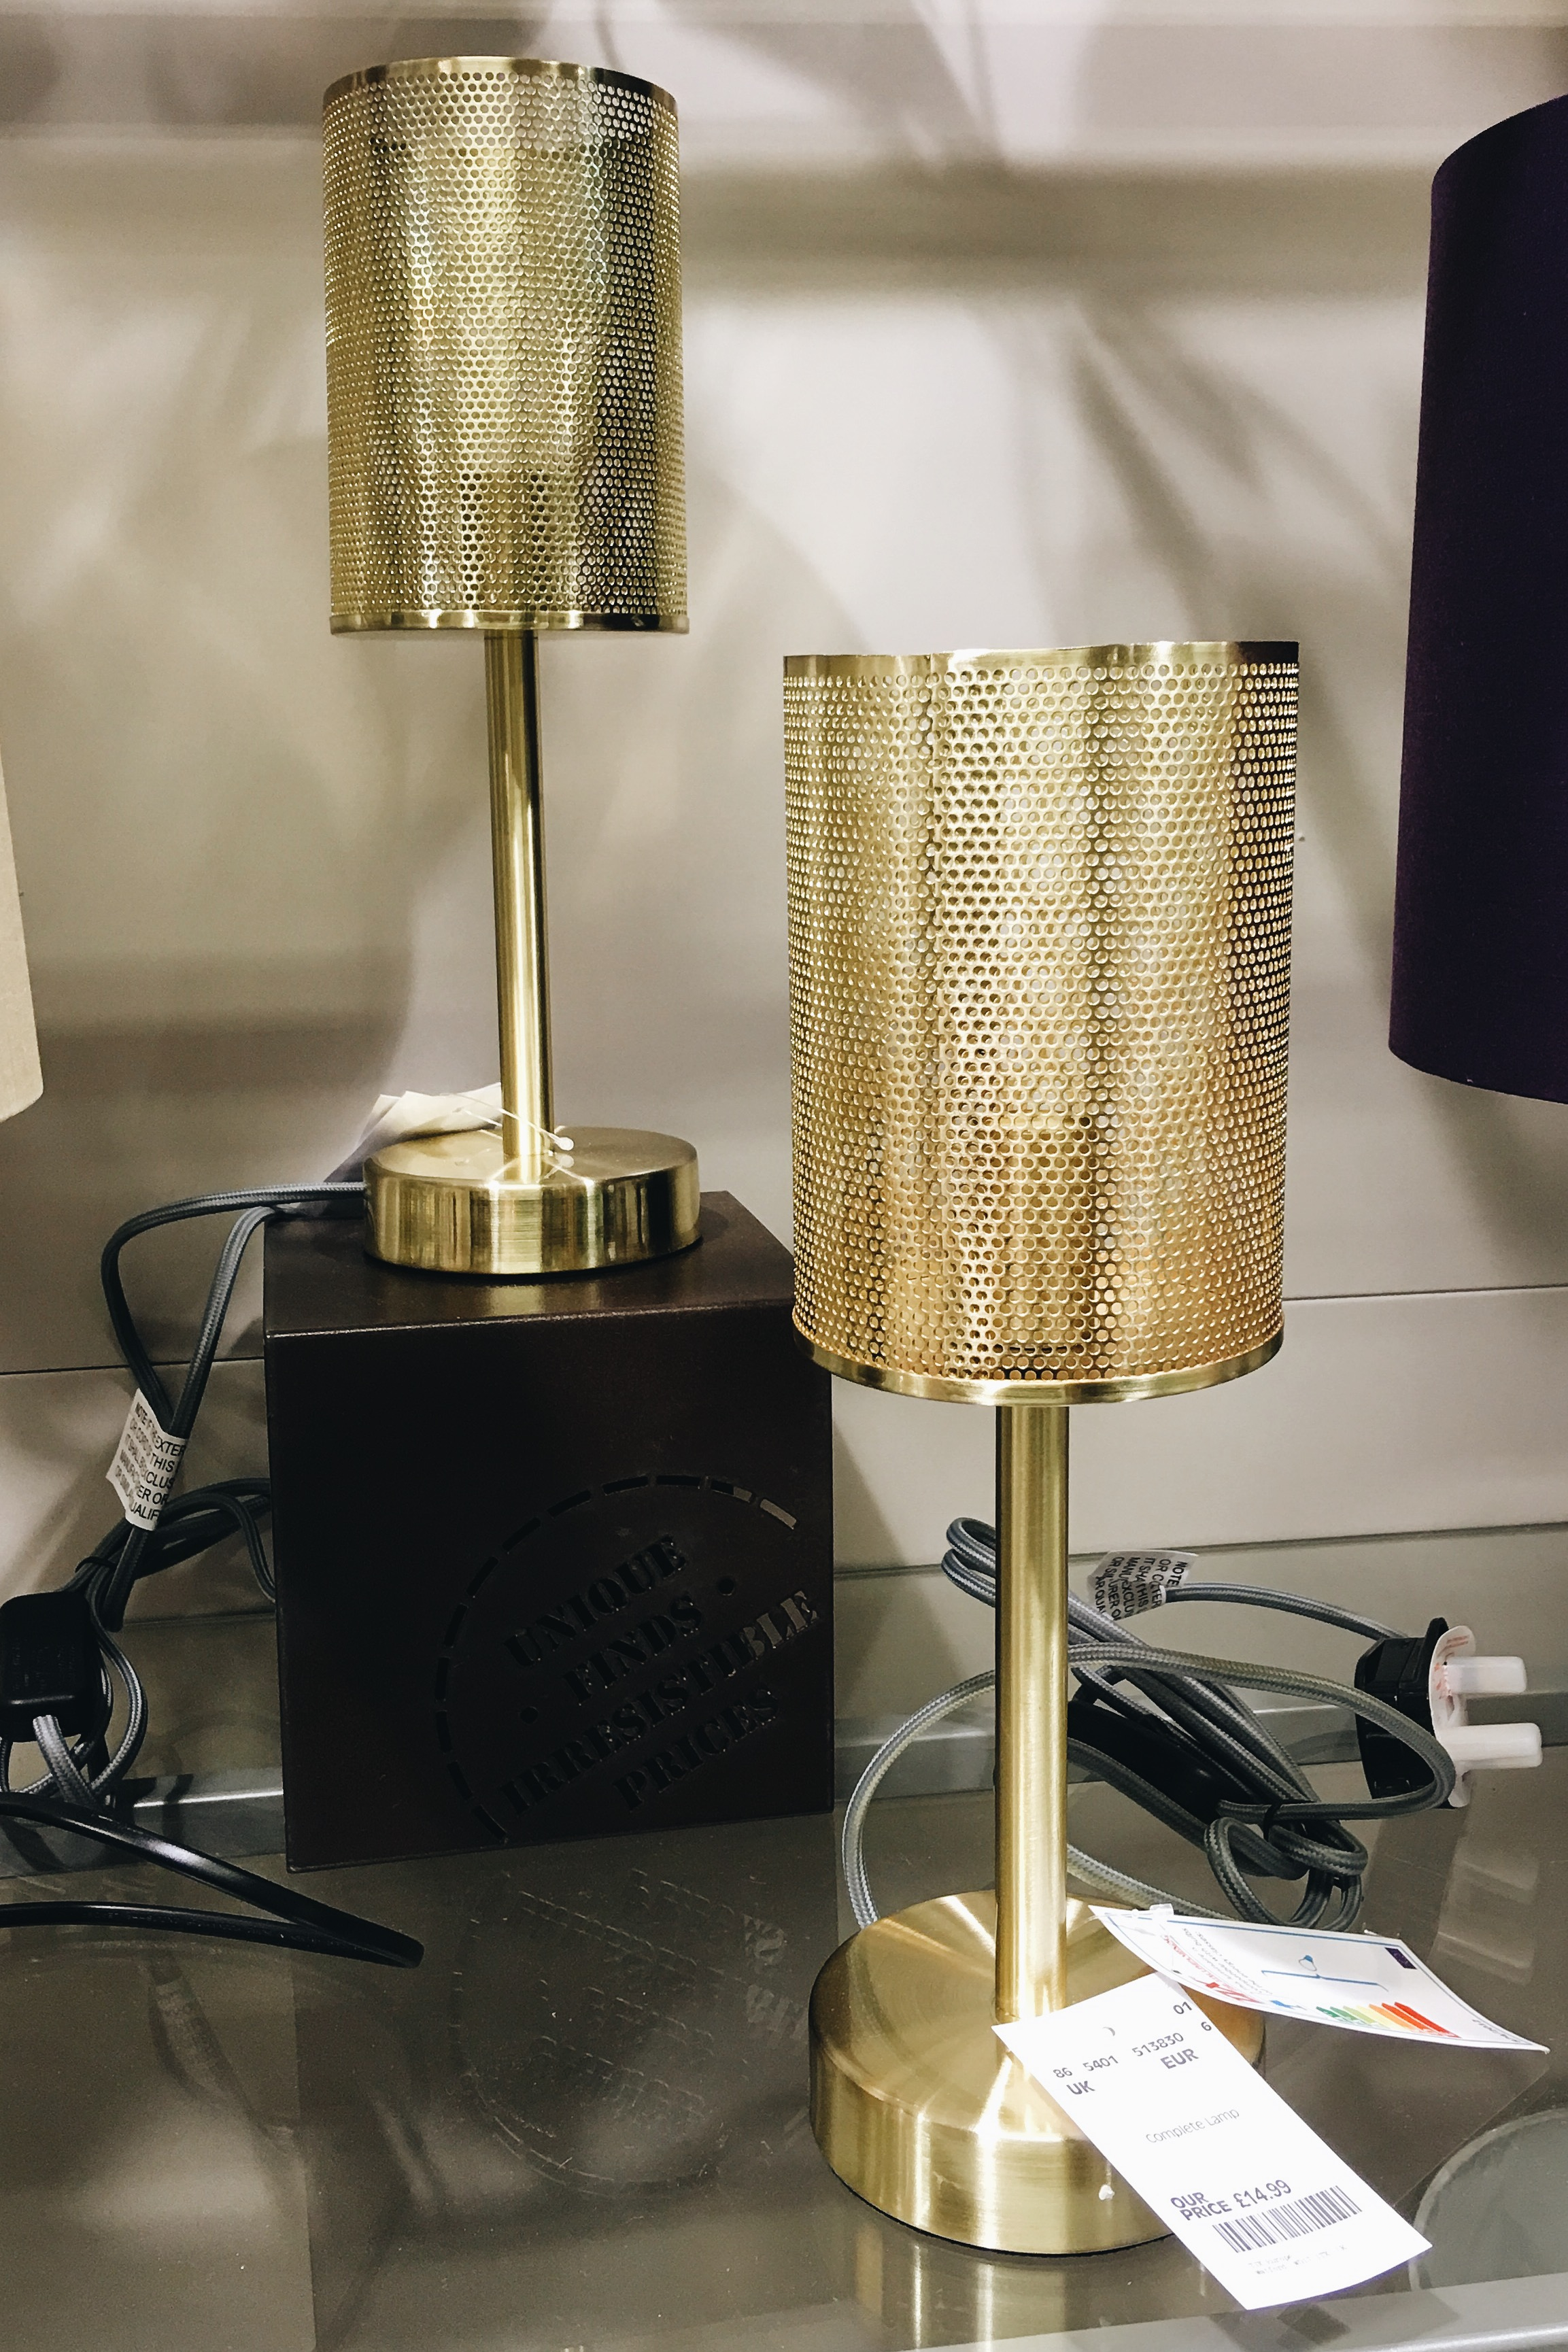 These gold lights are only £14.99 each. I'd buy two and have them as bedside table lamps - that's bedroom lighting sorted for just shy of only £30!